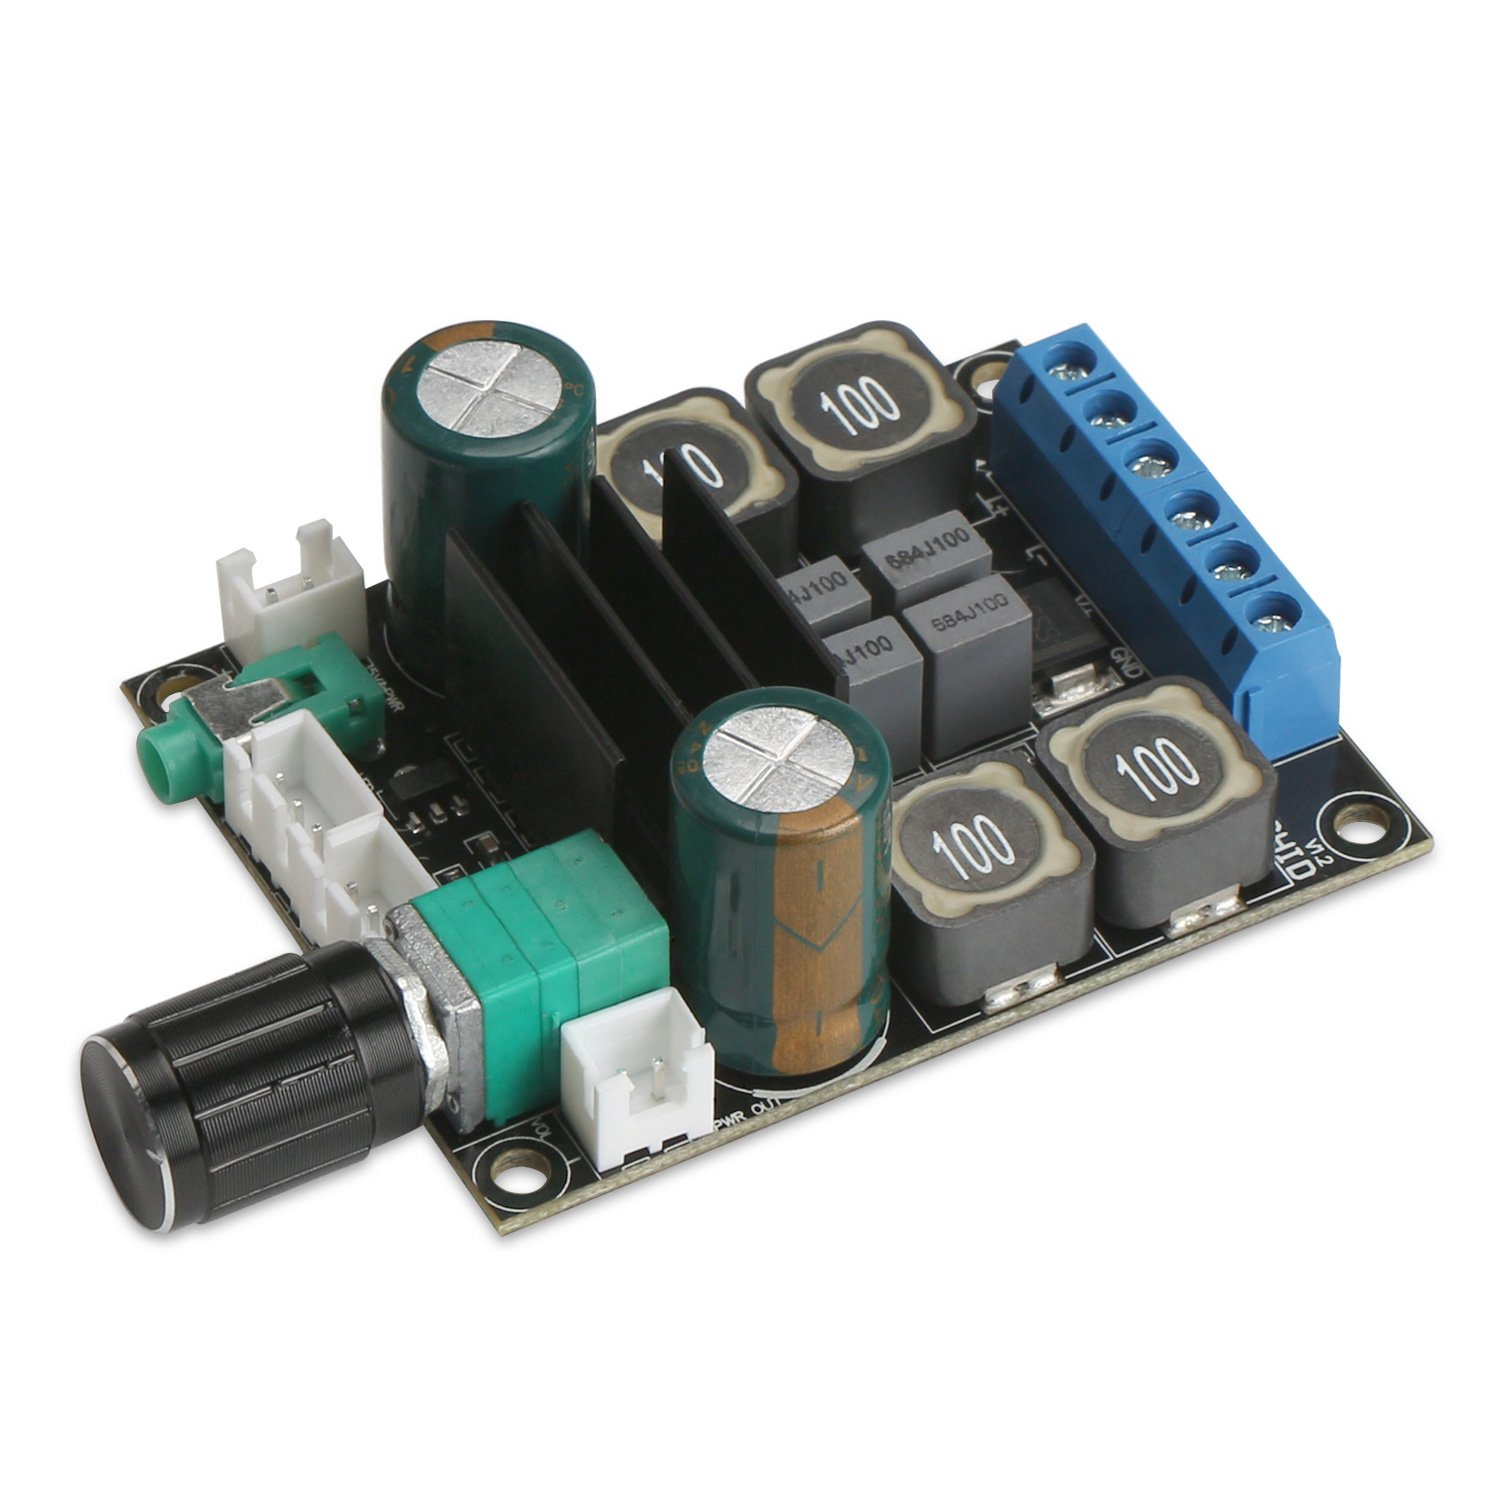 Amplifier Board, DROK TPA3116 HiFi Dual-Channel Stereo Audio Amplifier DC10-25V Digital 2.0 Amp Module 50W Output with Volume Adjustment Knob